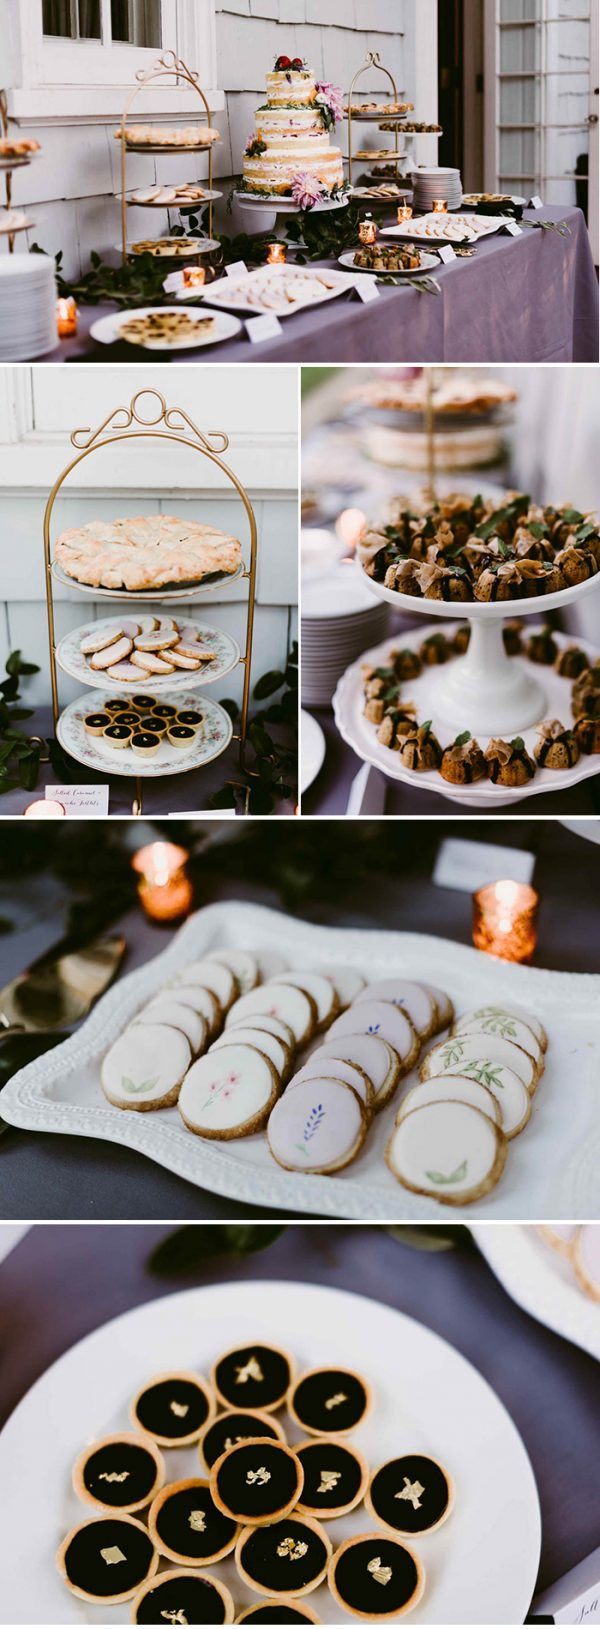 Enchanting Jewish Wedding in Cleveland, Ohio / bride wearing gorgeous Leanne Marshall gown from Something White, A Bridal Boutique, Independence Ohio / photo by Suzuran Photography / event design and planning by A Charming Fete / florals by Molly Taylor & Co. / cake by Hummingbird Bake Shop